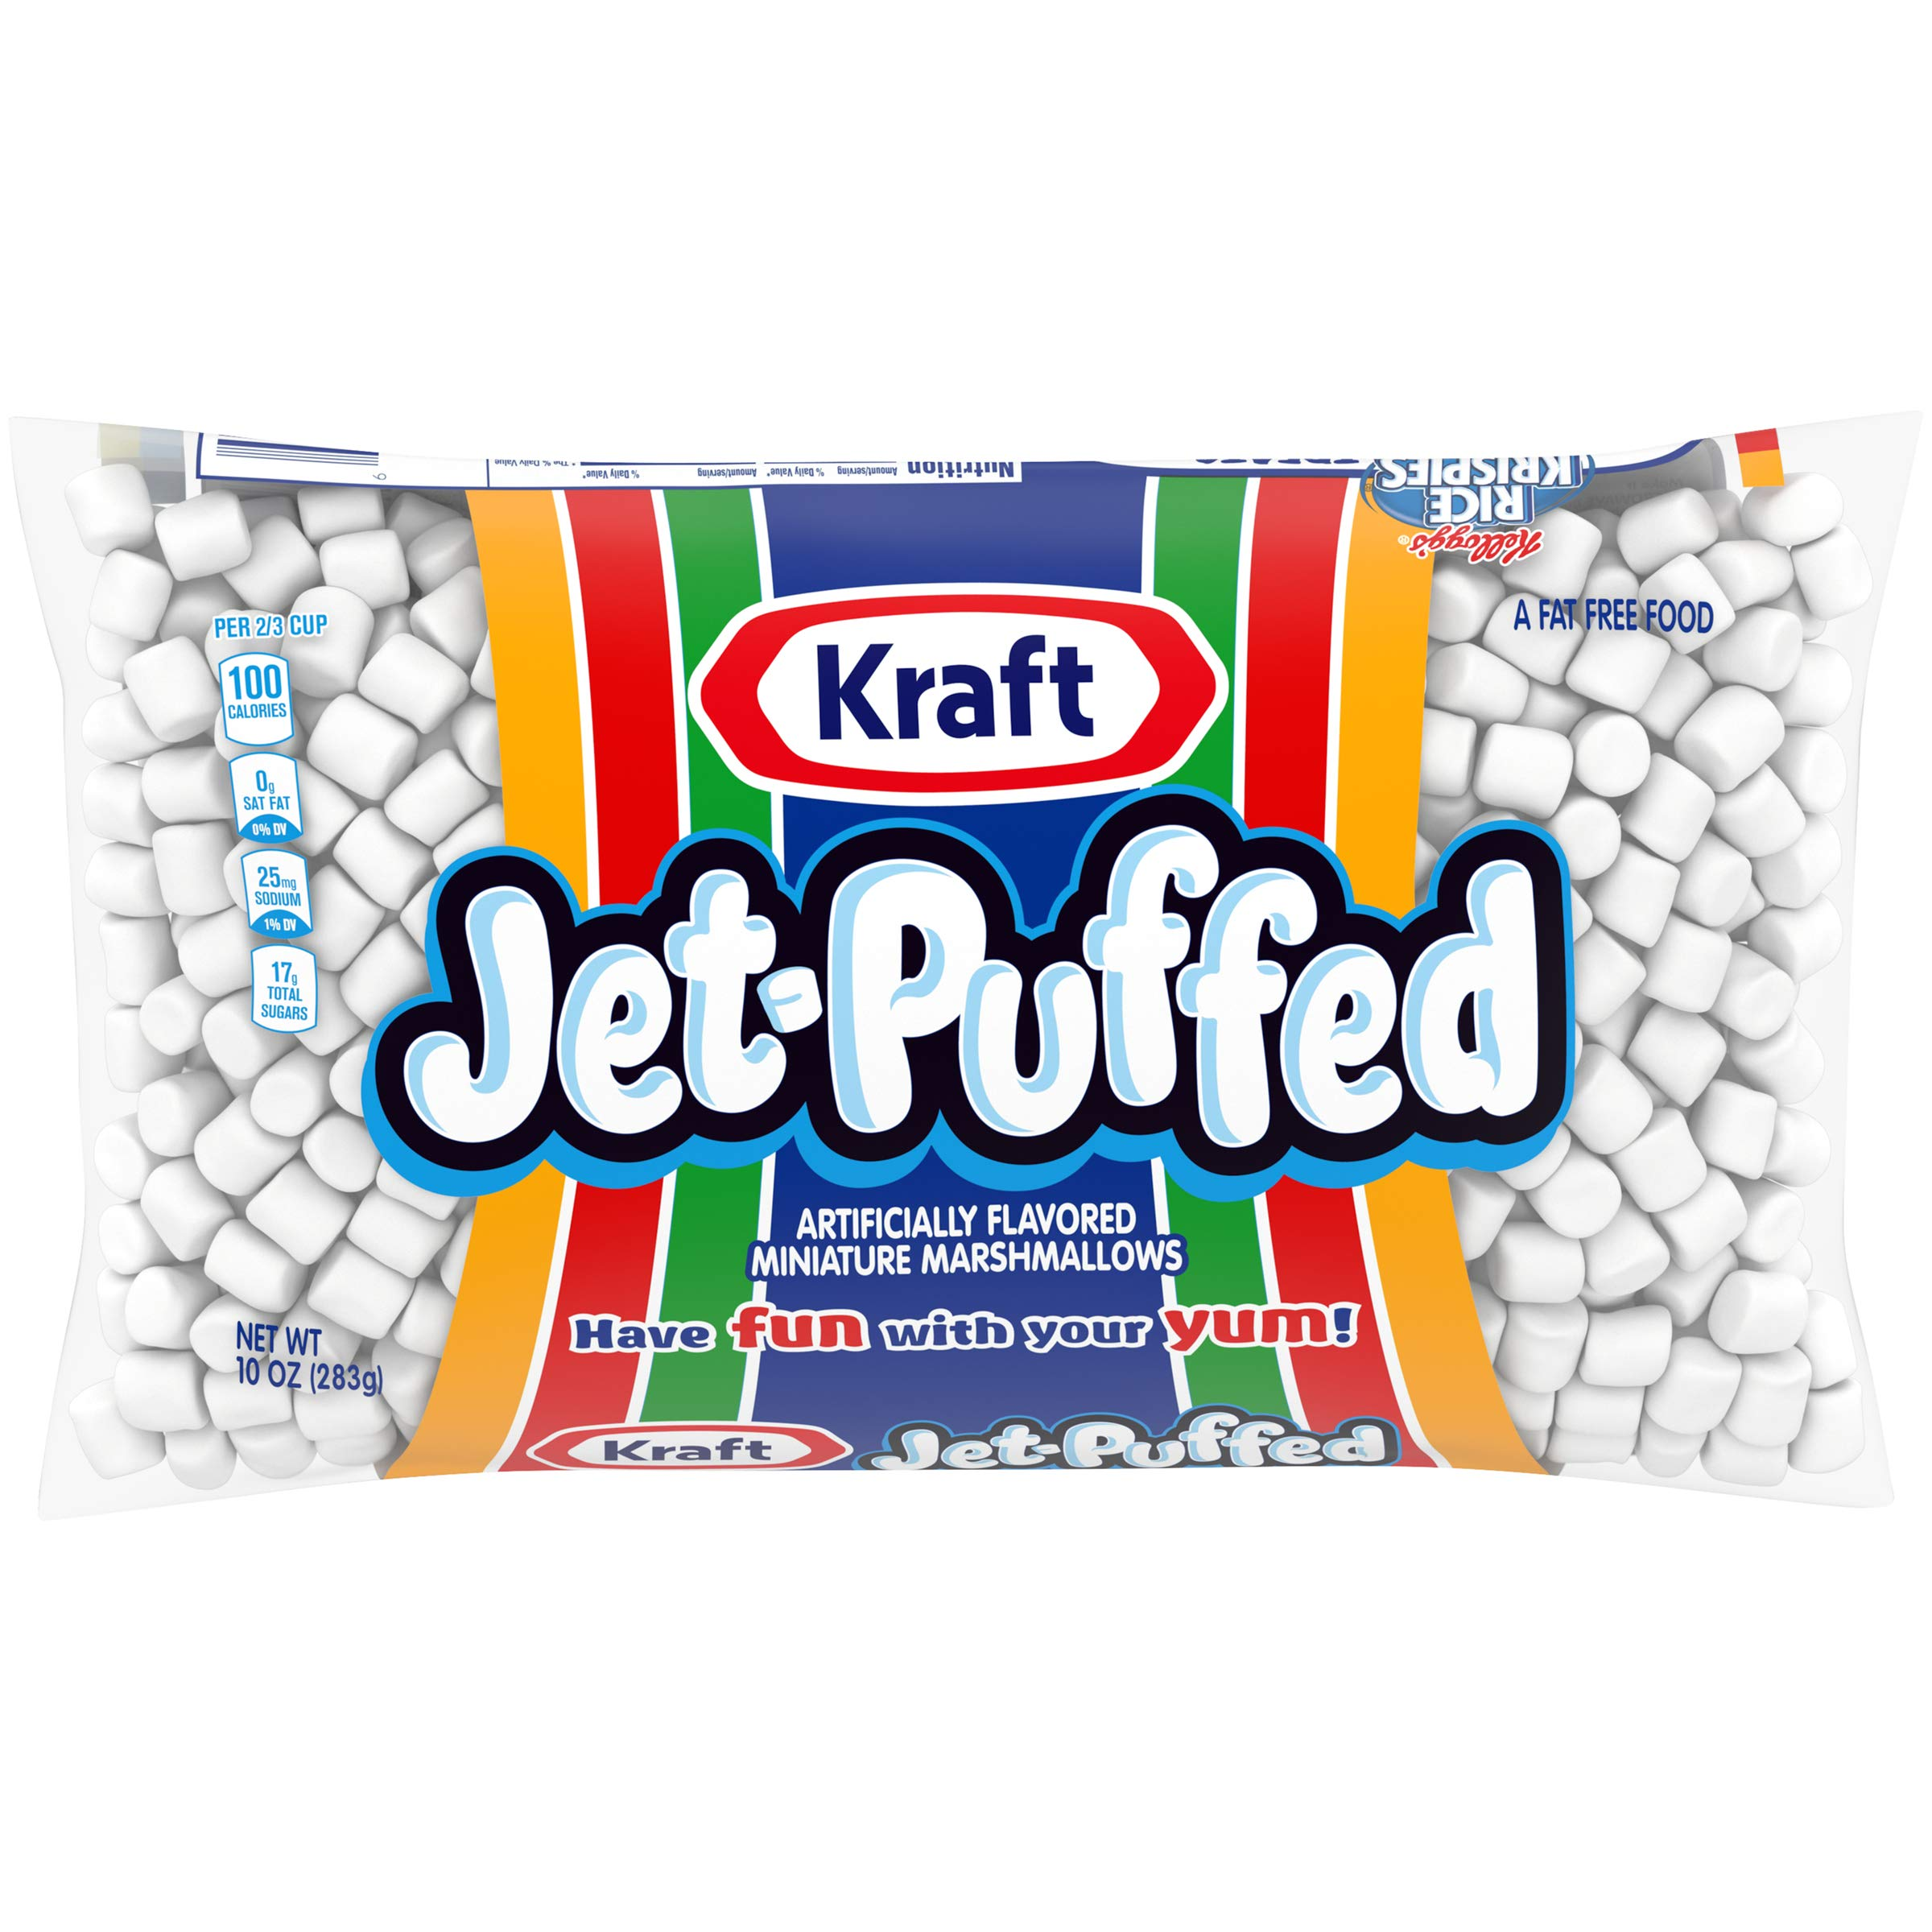 Jet Puffed Mini Marshmallows (10 oz Bags, Pack of 12)